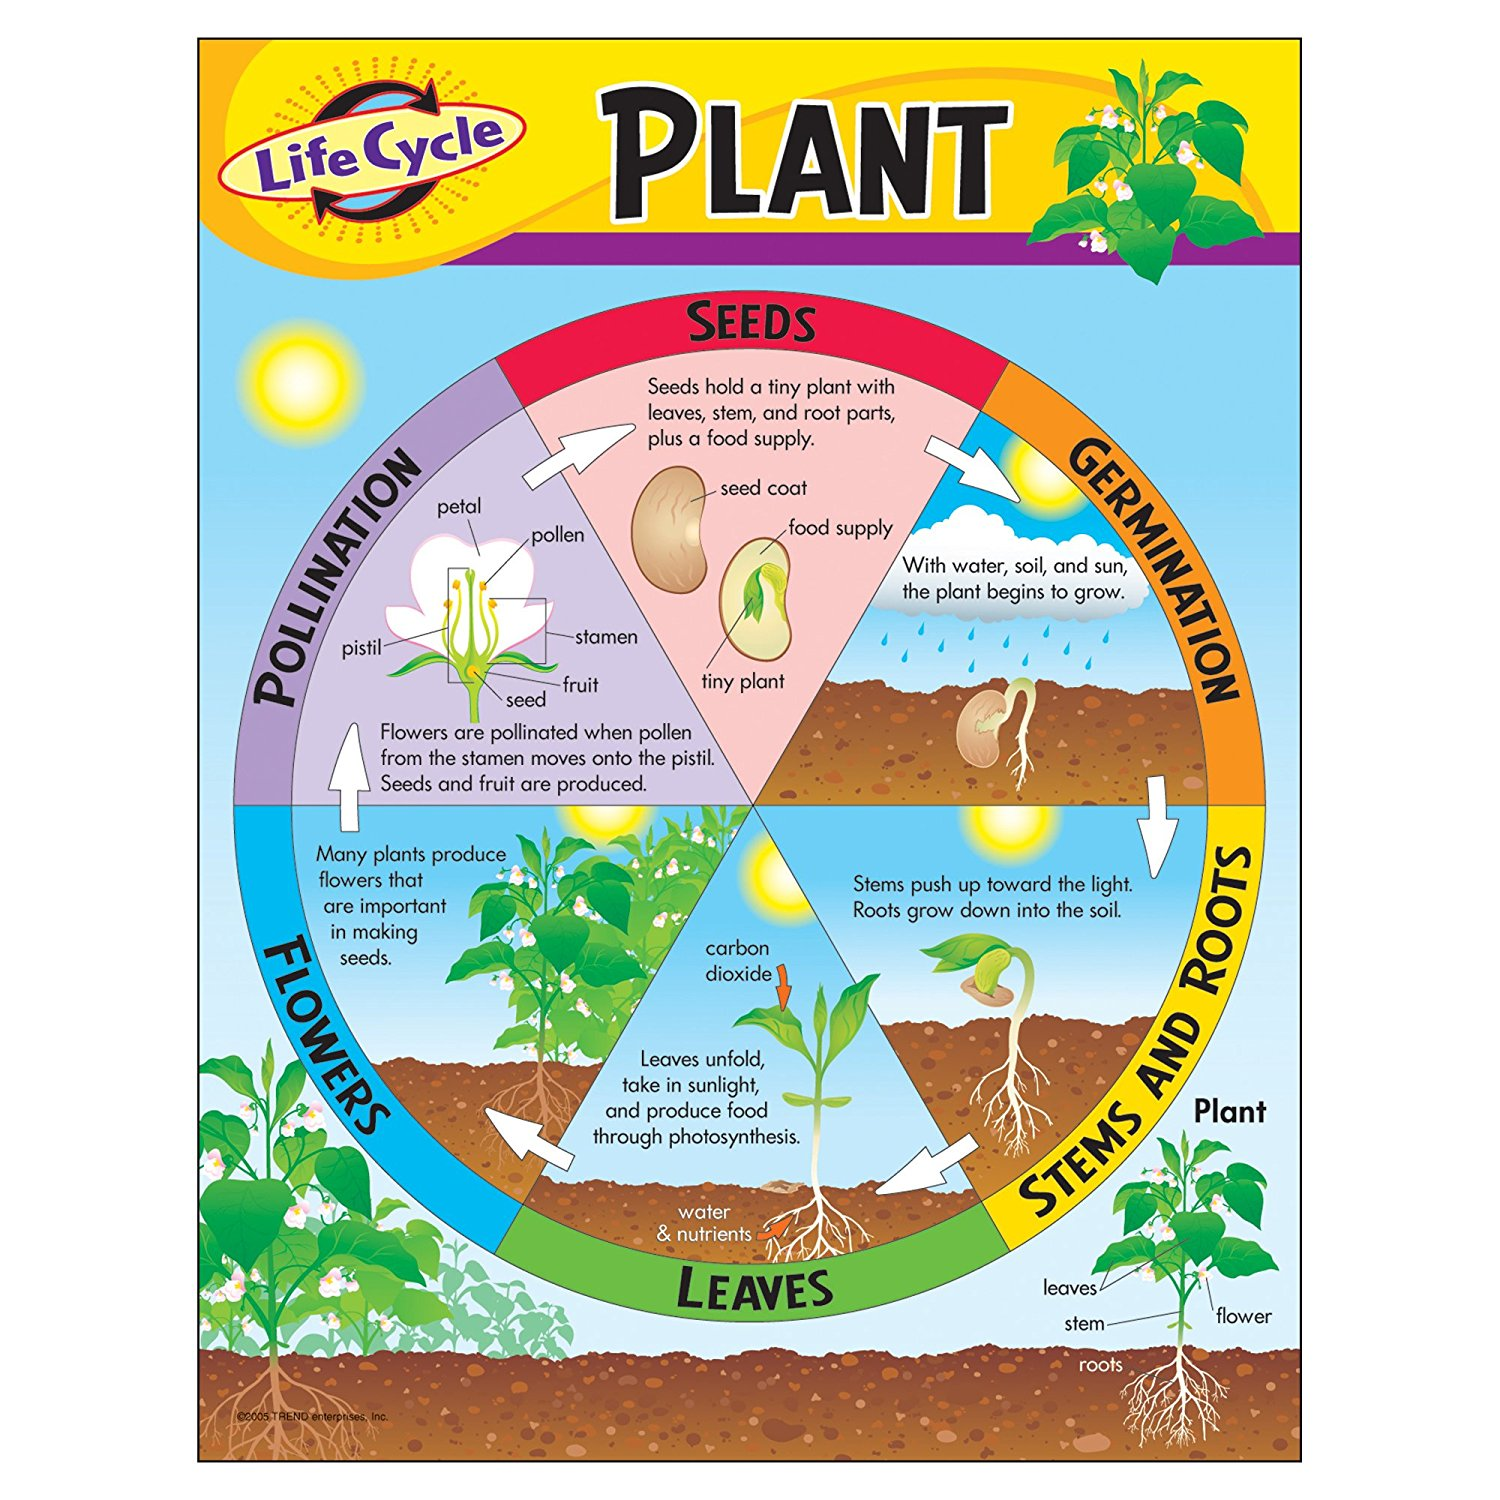 Plant Life Cycle Term Paper